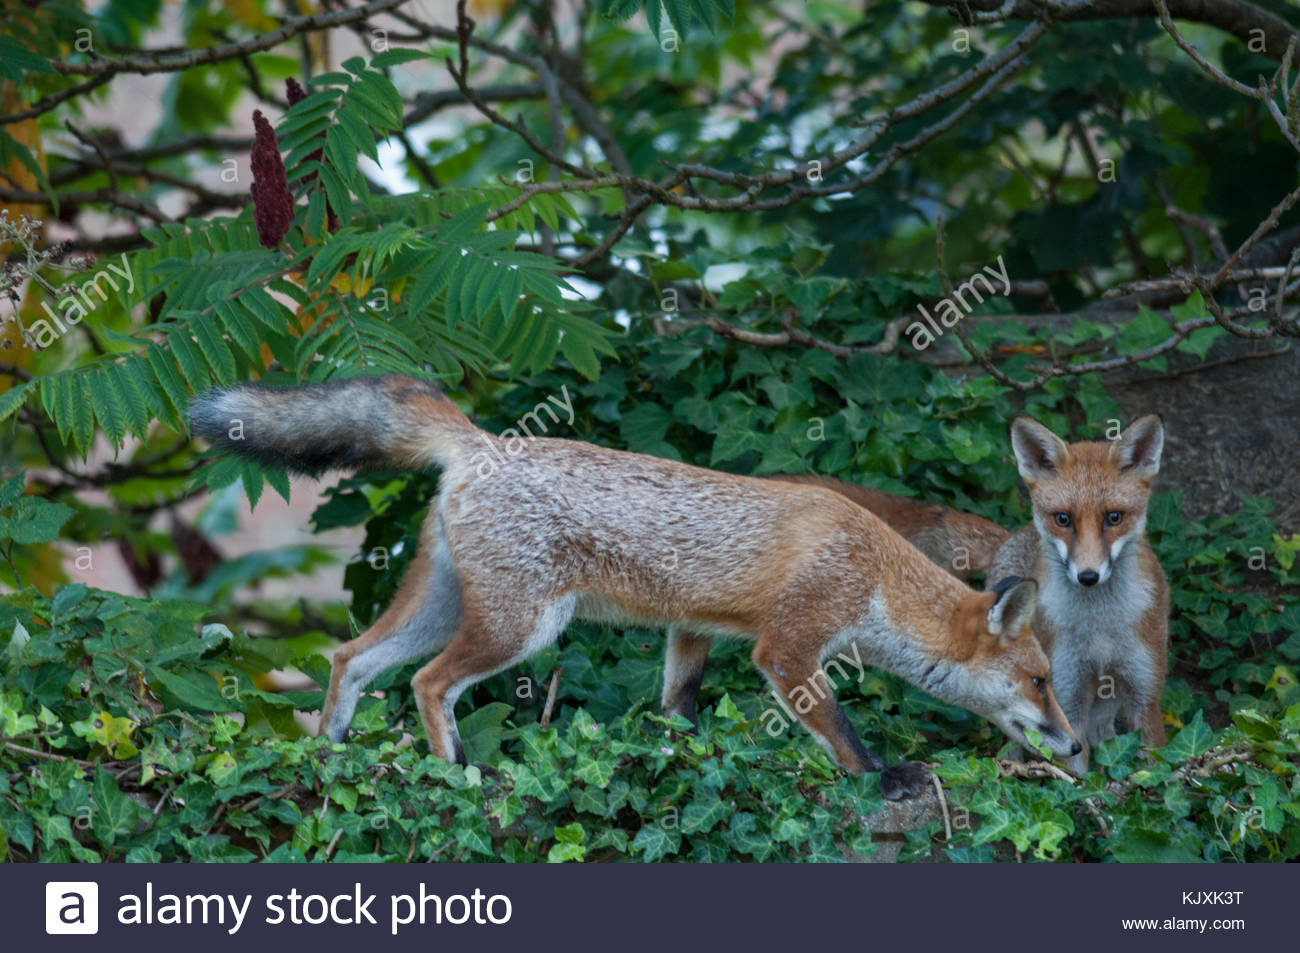 two Red Foxes, Vulpes vulpes, look for food scraps in a garden, London, United Kingdom - Stock Image